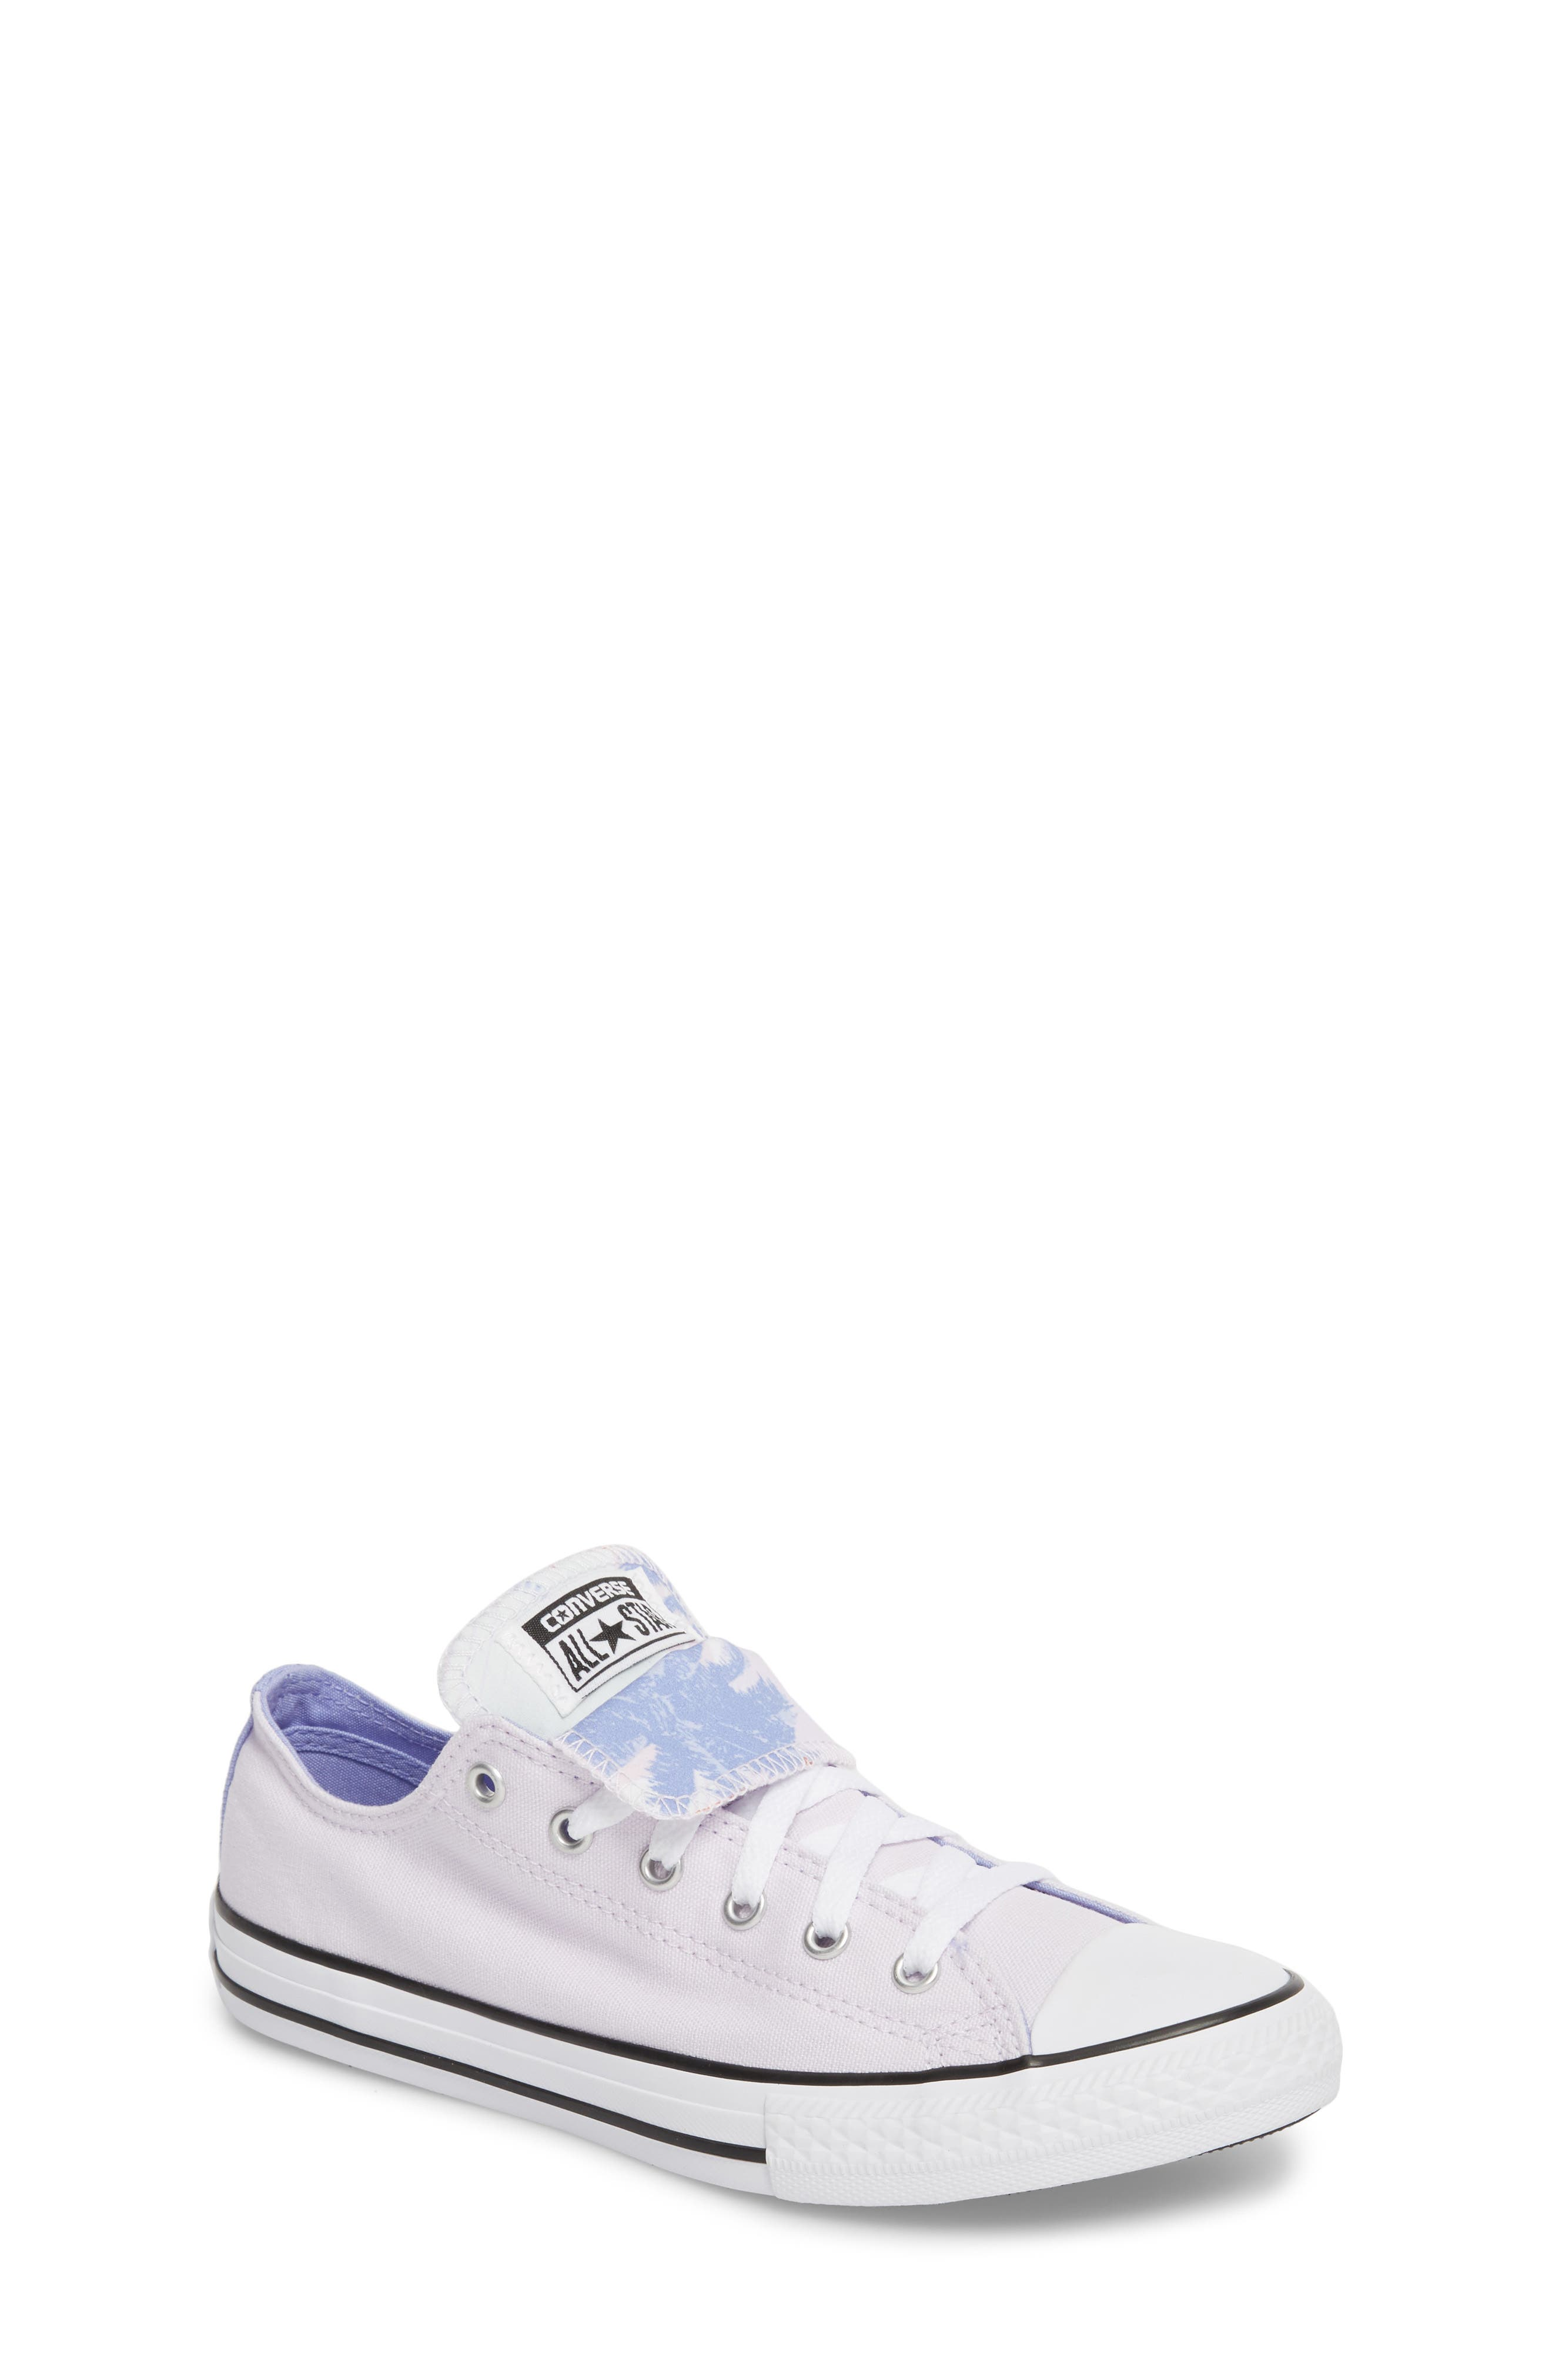 Chuck Taylor<sup>®</sup> All Star<sup>®</sup> Palm Tree Double Tongue Low Top Sneaker,                         Main,                         color, Barely Grape